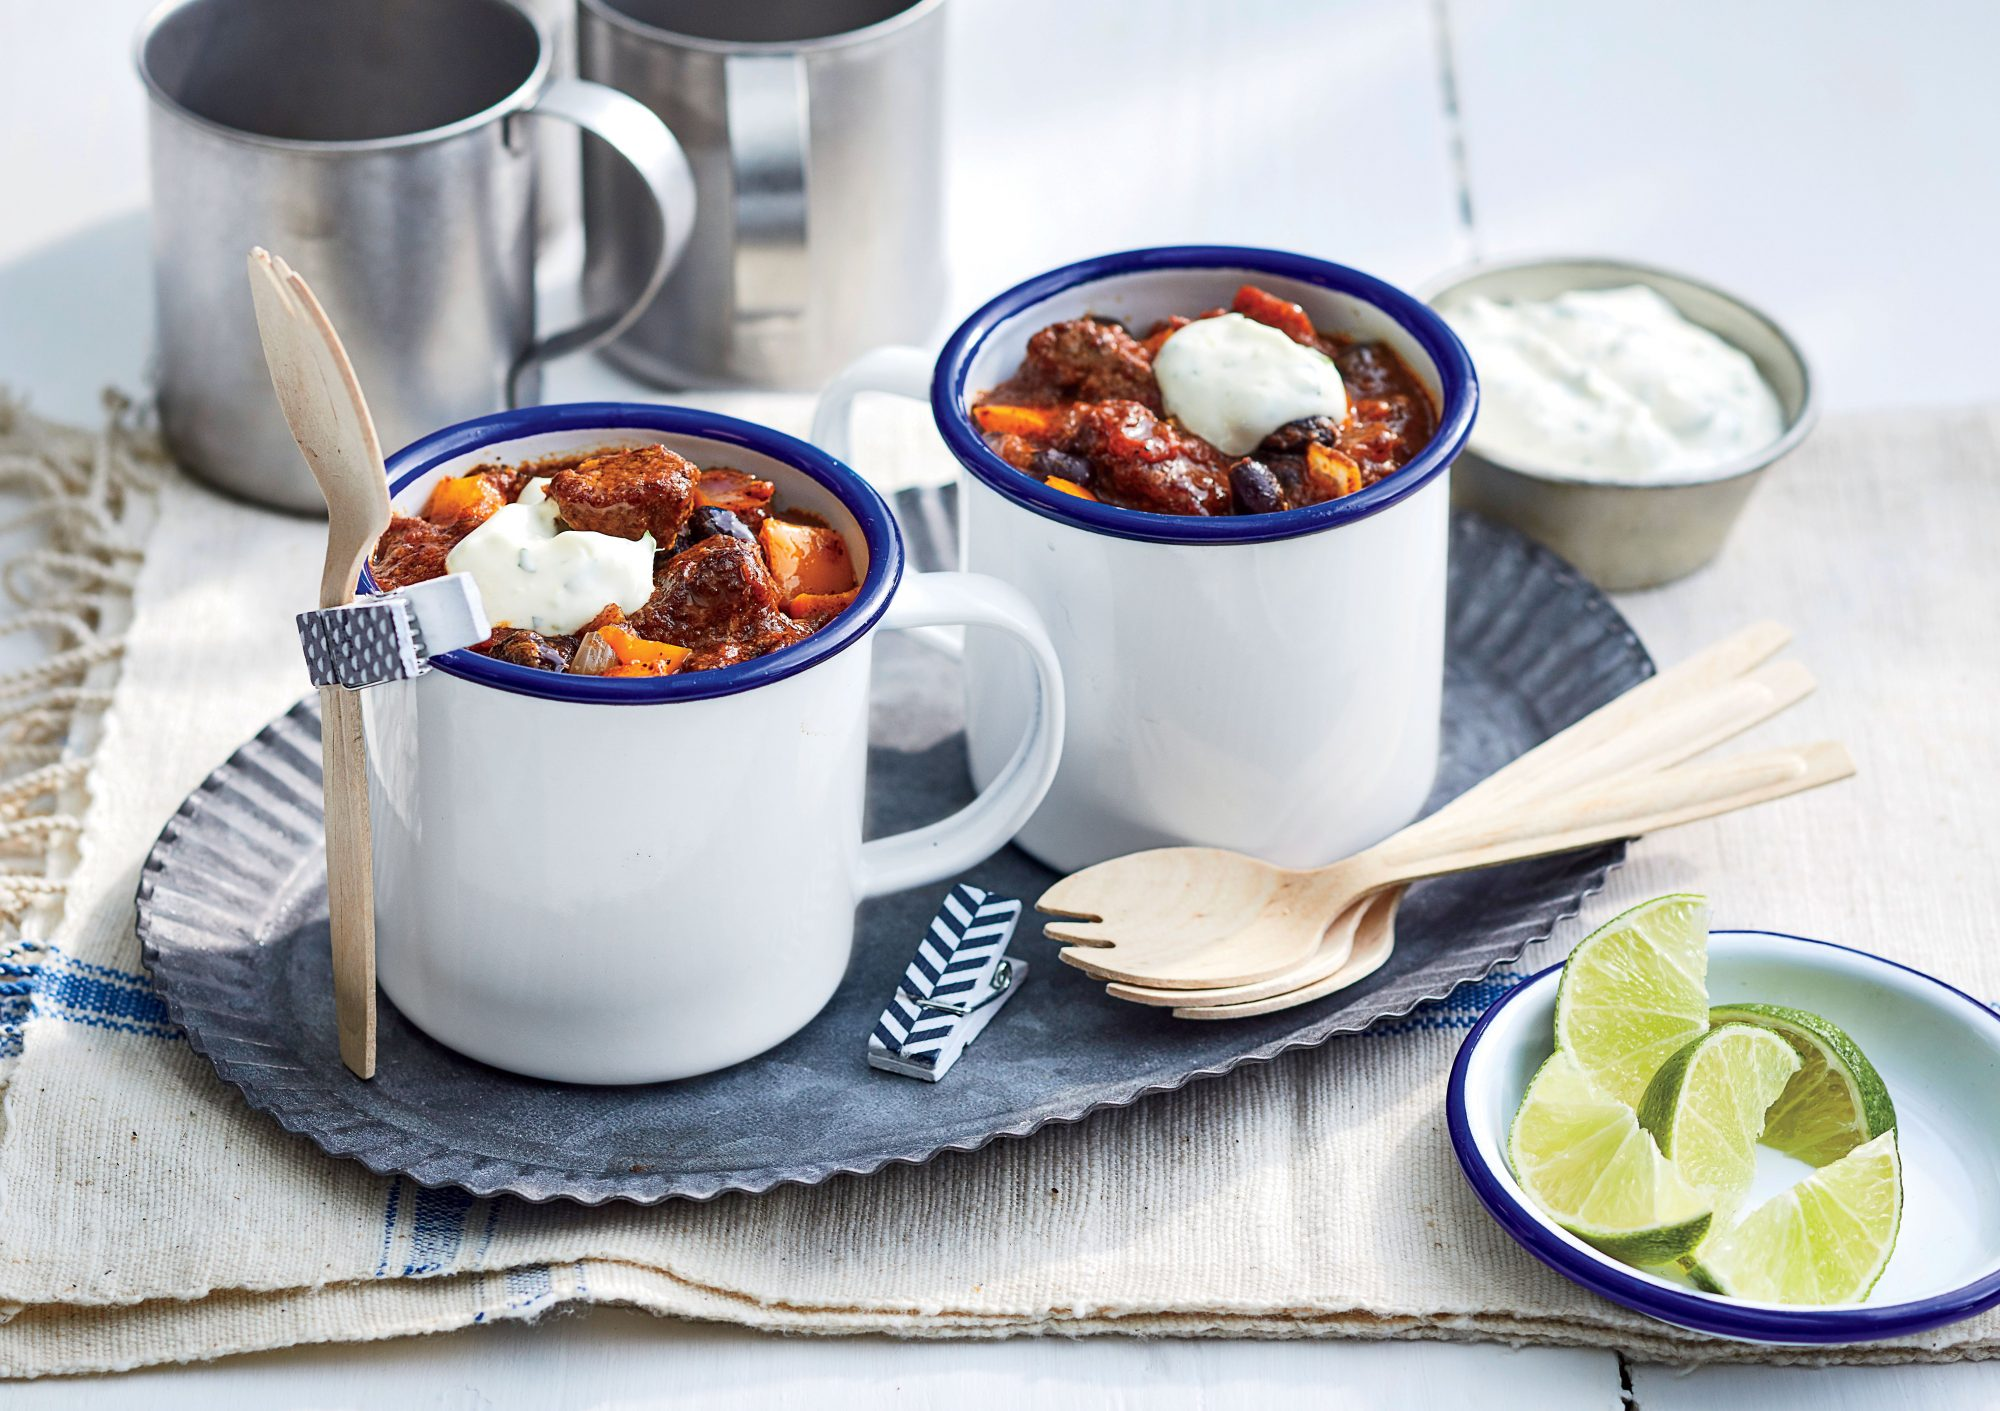 Brisket-and-Black Bean Chili with Cilantro-Lime Crema